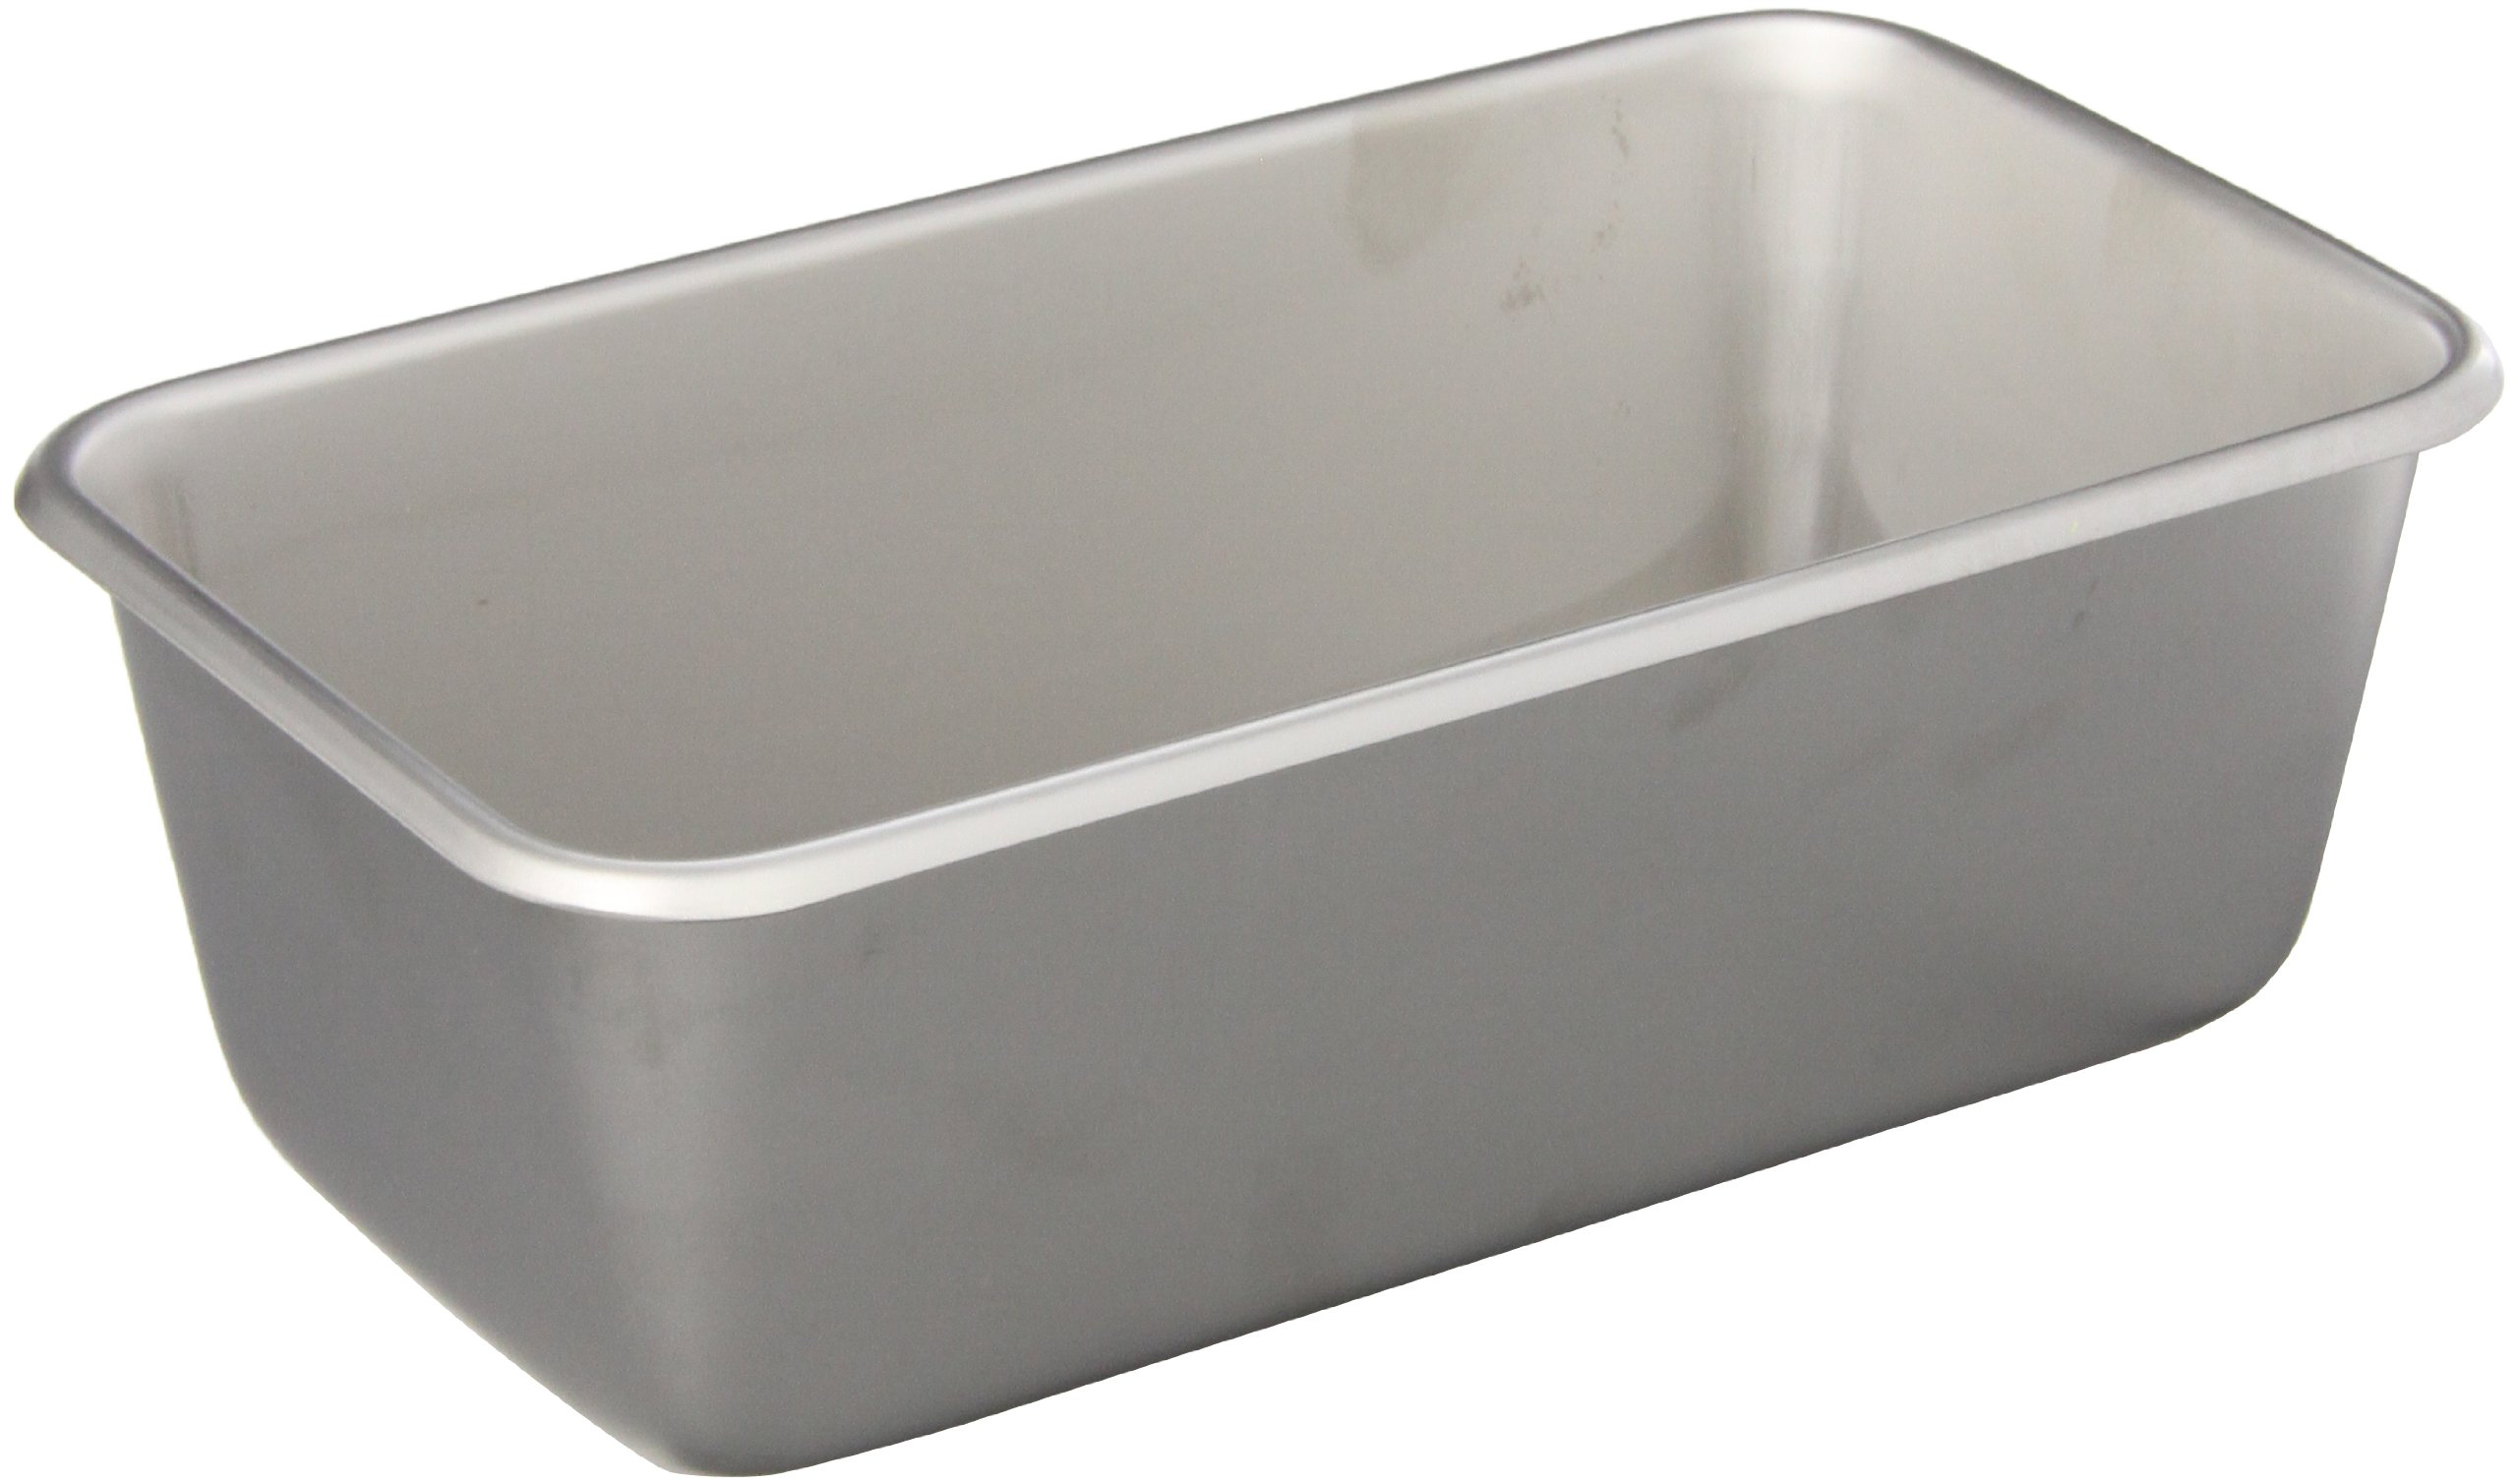 Polar Ware 953 Stainless Steel Catheter Tray, 8-7/8'' L x 5'' W x 3'' H by Polar Ware